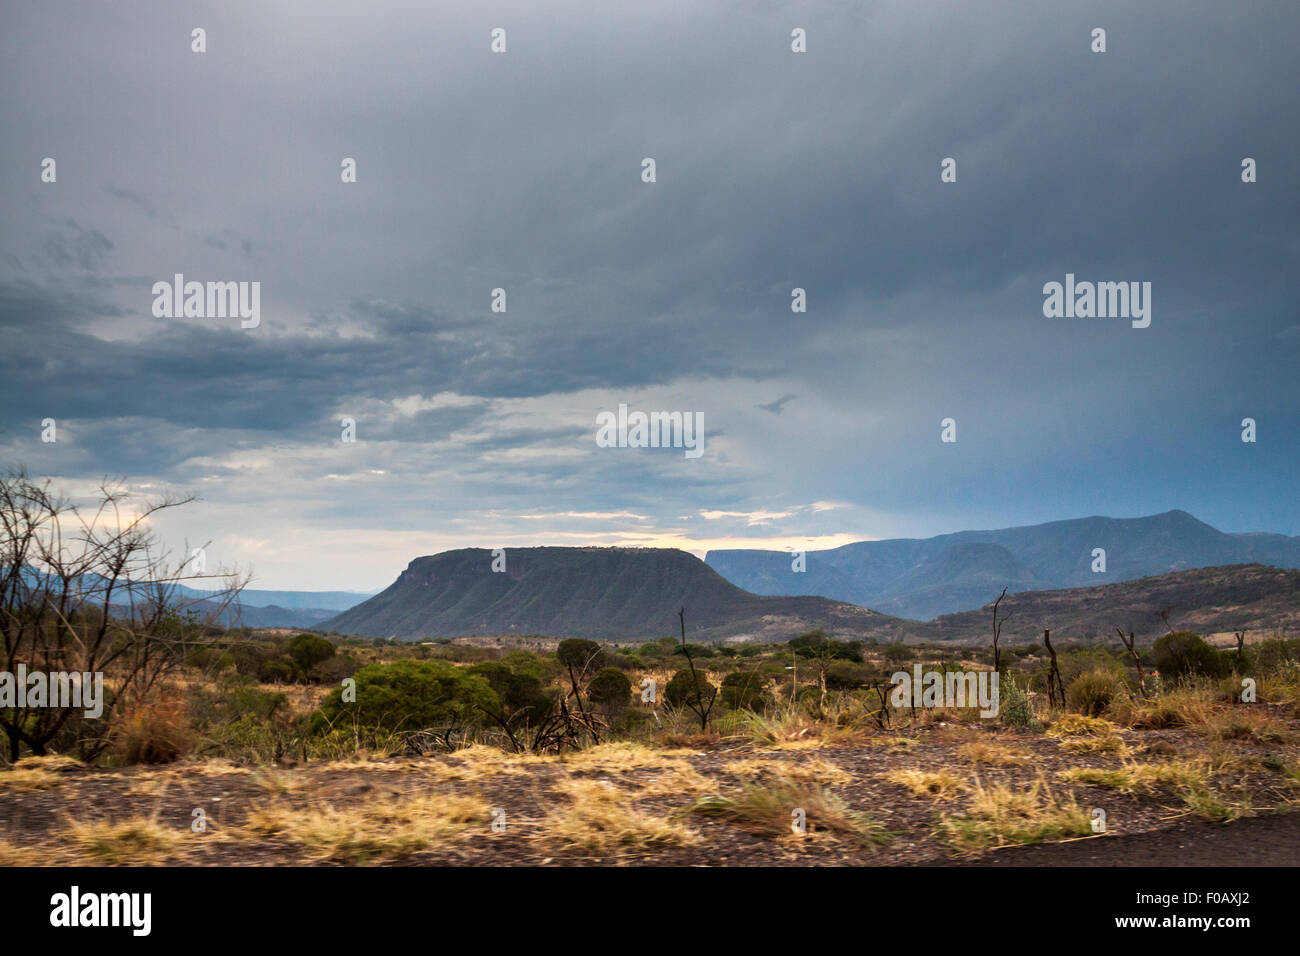 Mountain formation in north america at storm time. Zacatecas, ZAC. Mexico - Stock Image